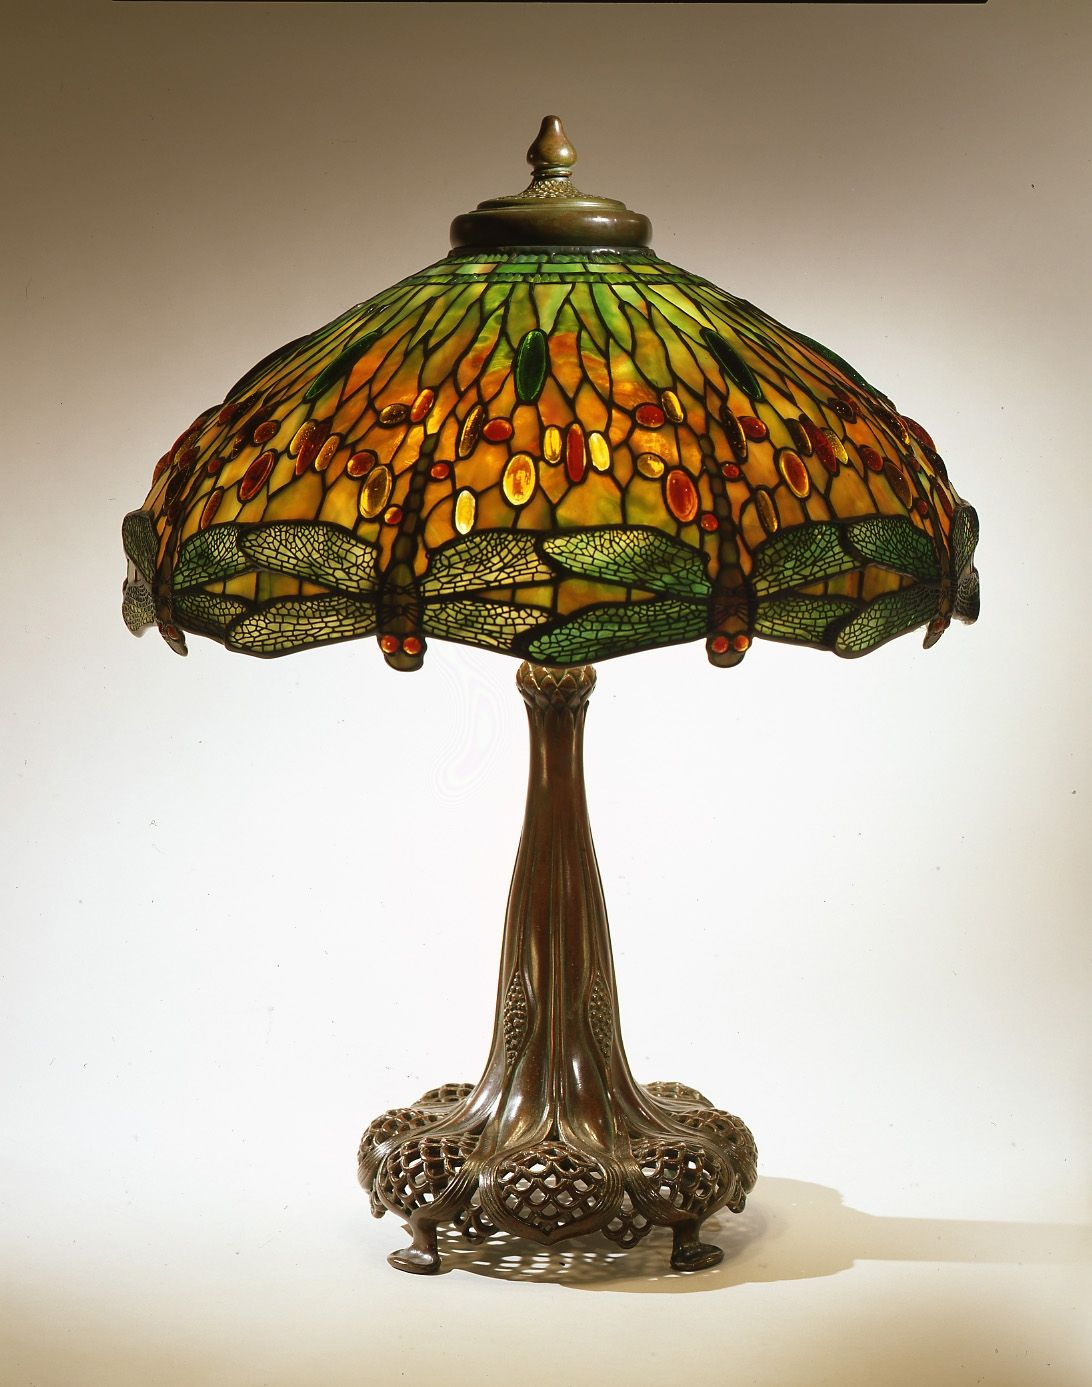 Tiffany Style Lamp Shades Amusing Tiffany Style Lamp Shades For Table Lamps  Httpargharts Decorating Design